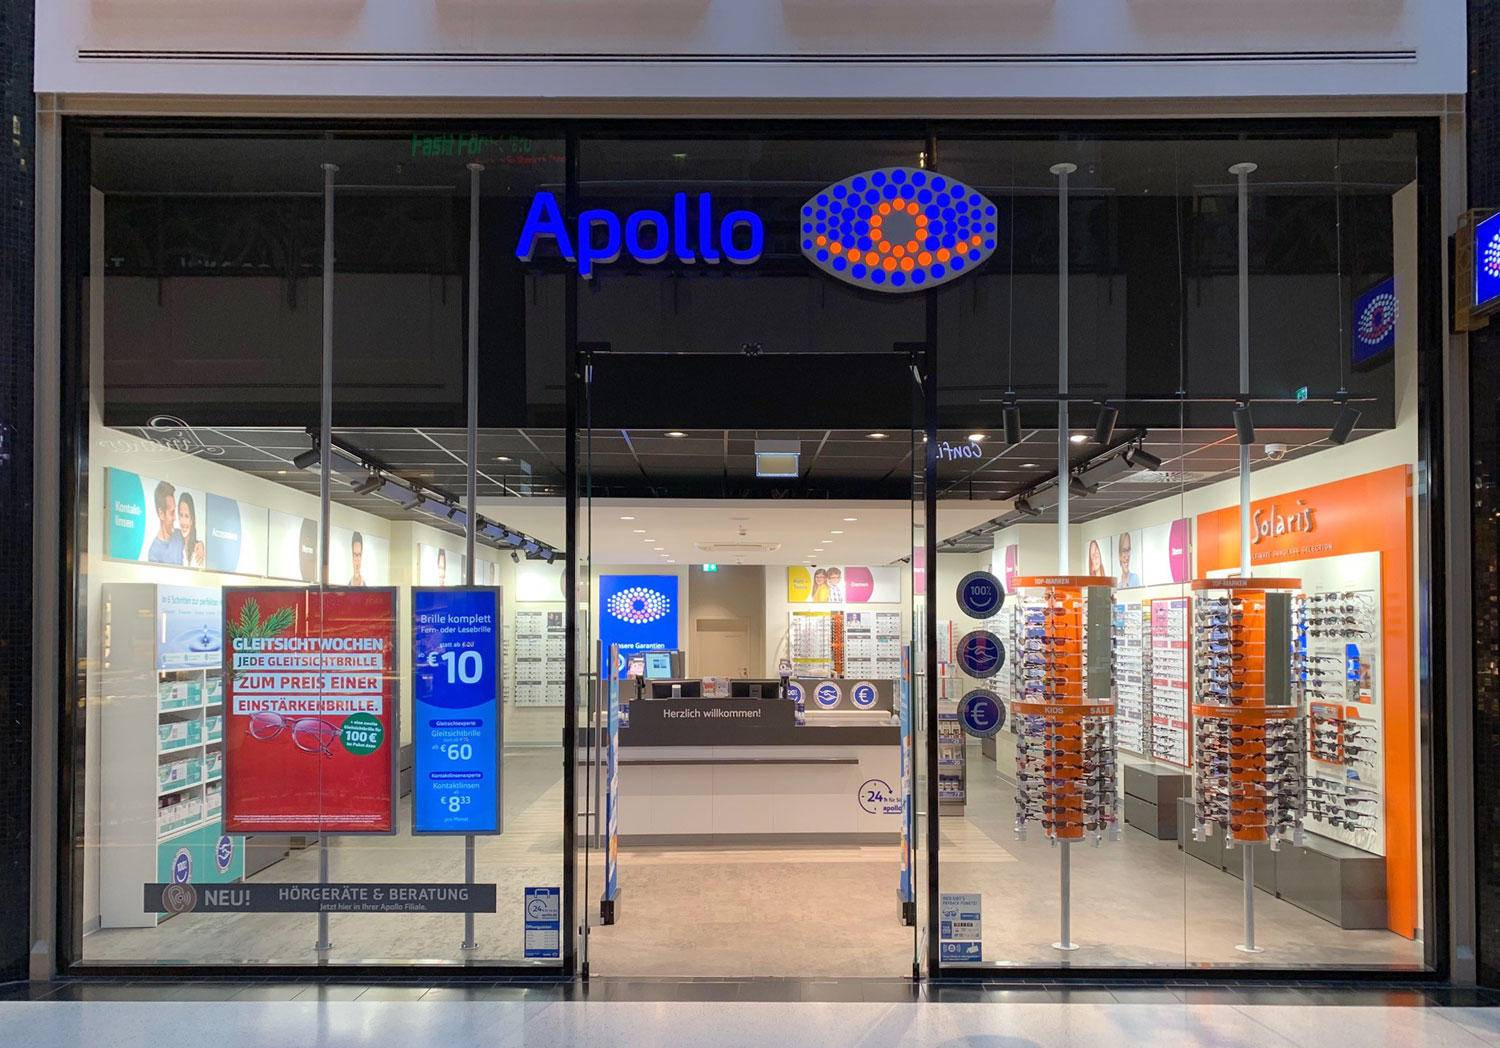 Apollo lesebrille